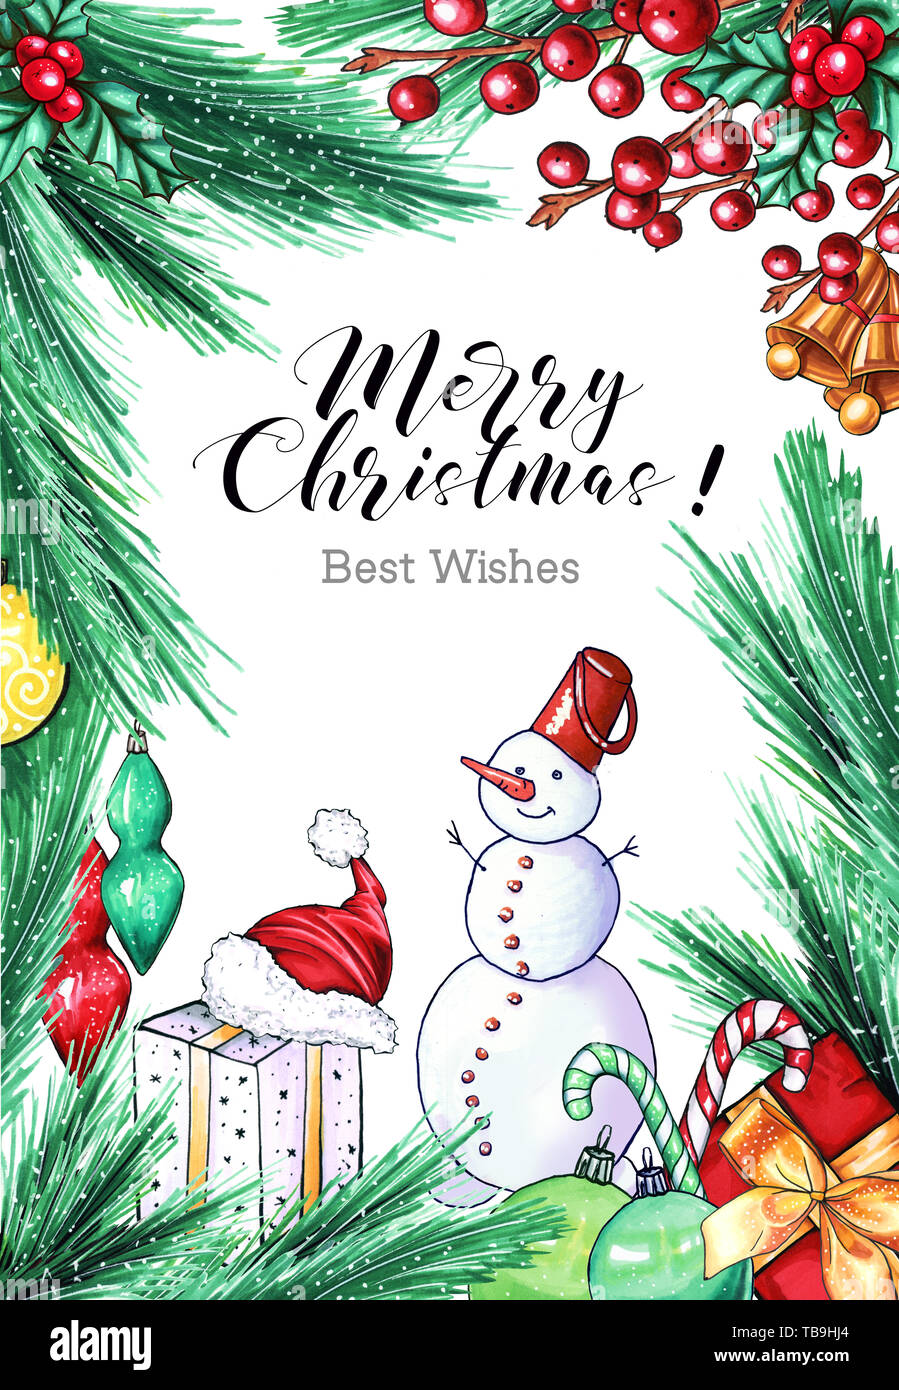 Merry Christmas greeting card template. Xmas calligraphic ...